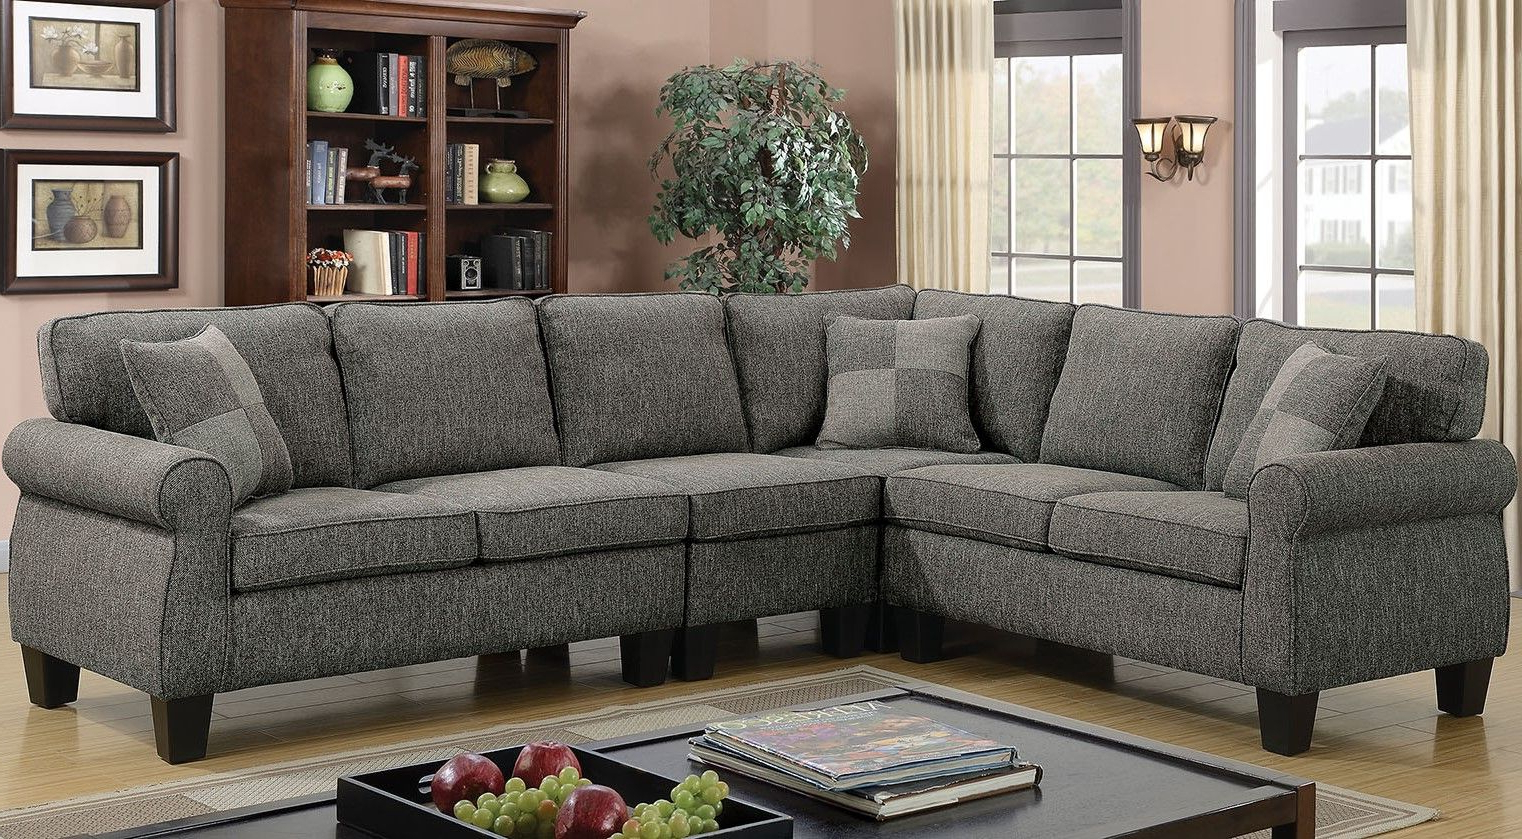 Sectional Sofas In Gray In Fashionable Rhian Transitional Sectional Sofa W/ Pillows In Dark Gray (View 5 of 20)